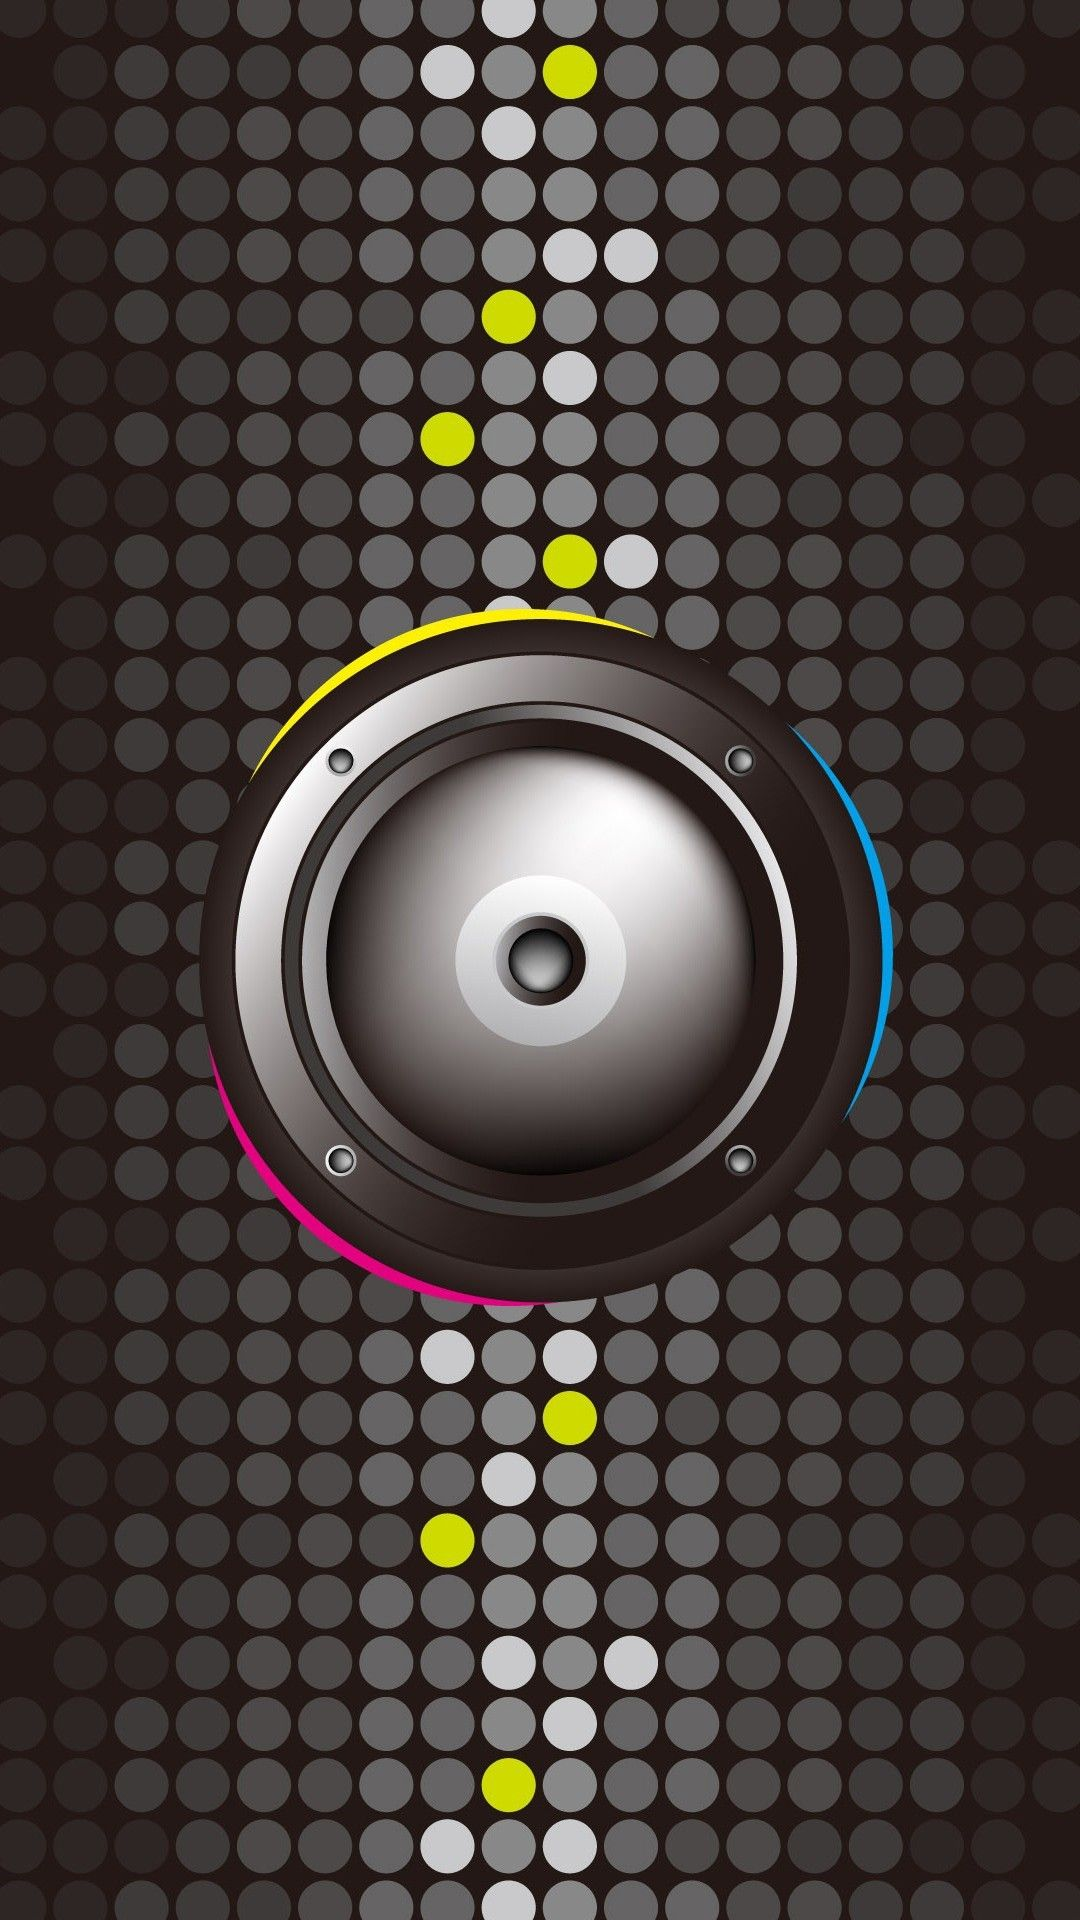 70 Music Iphone Wallpapers For Music Manias Speaker Wallpaper Iphone Wallpaper Wallpaper